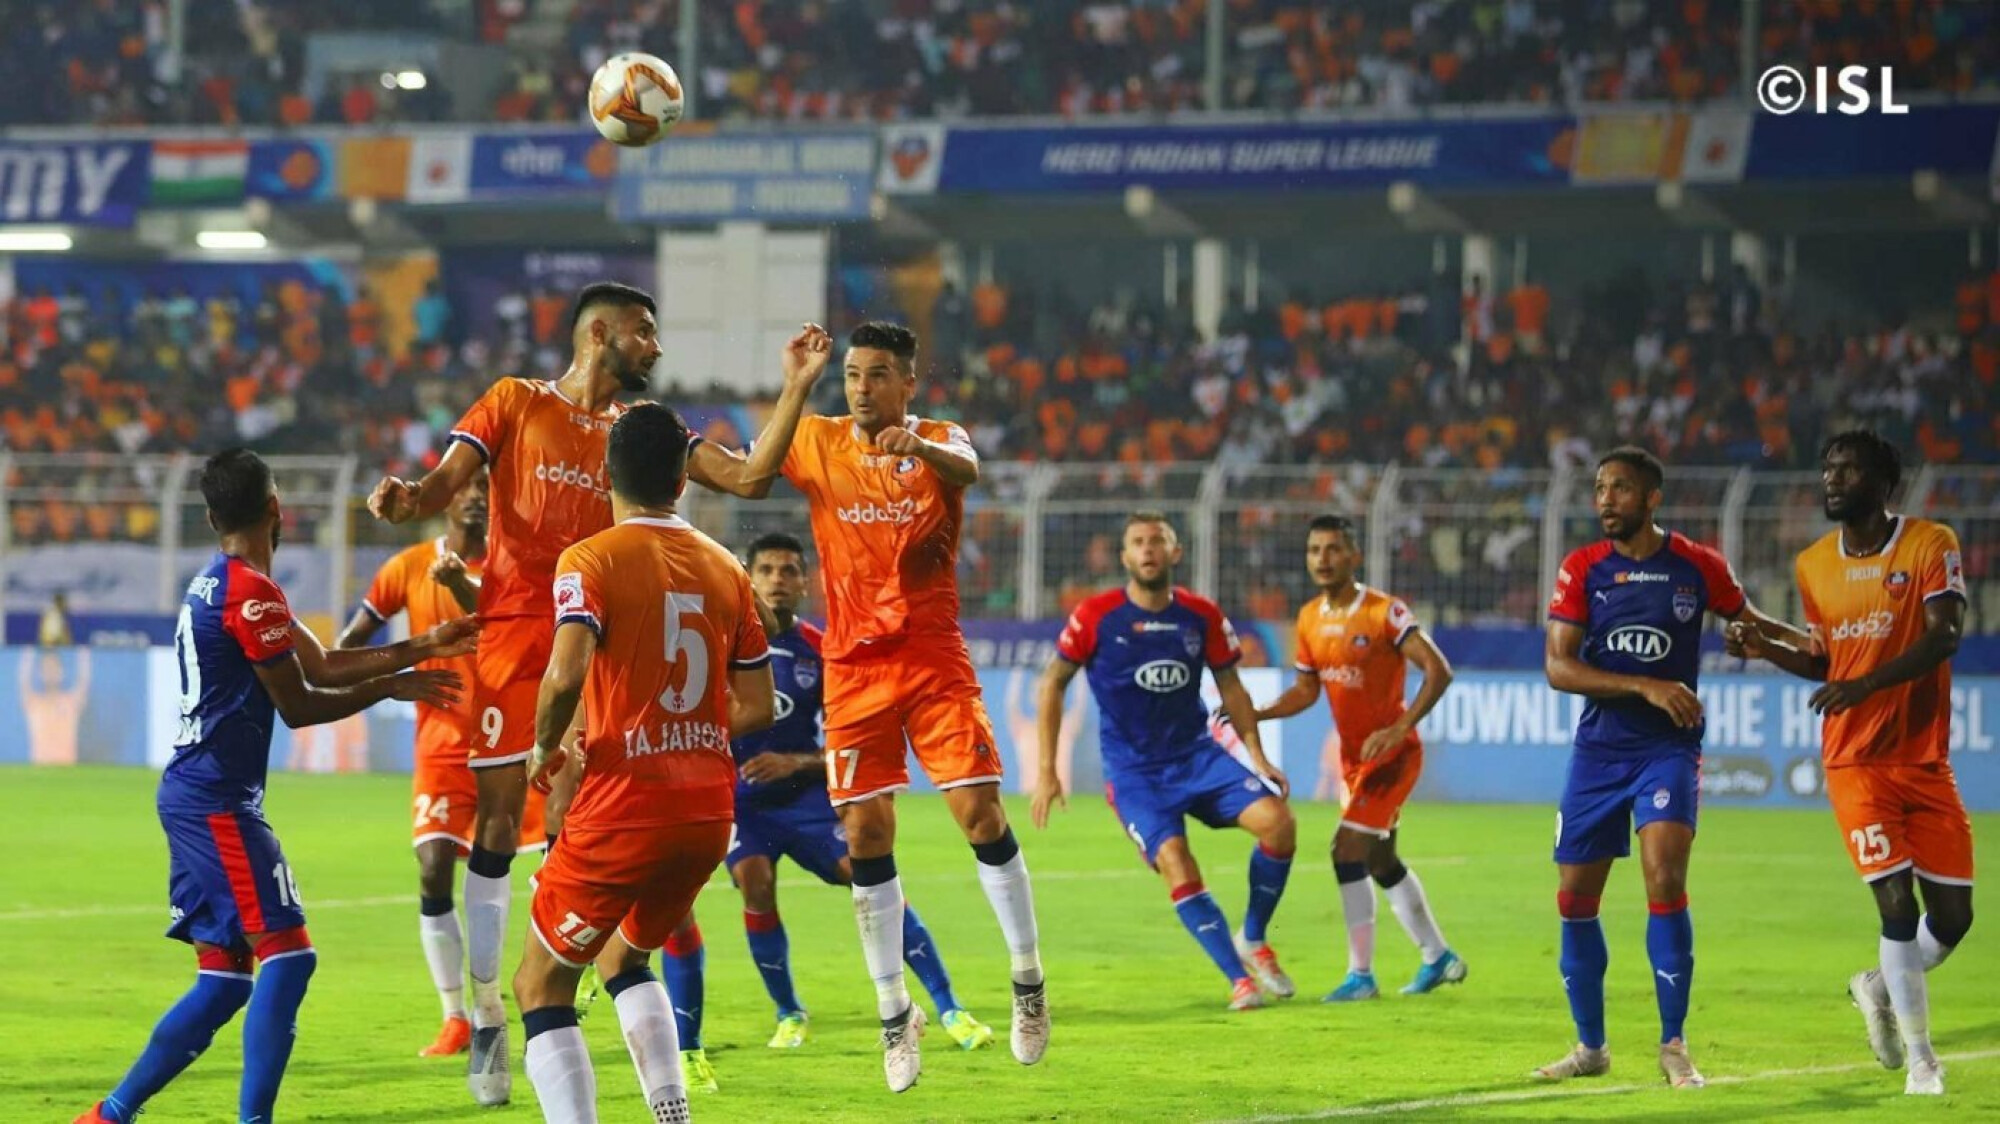 FCG v BFC: Team deserved only one point: Lobera